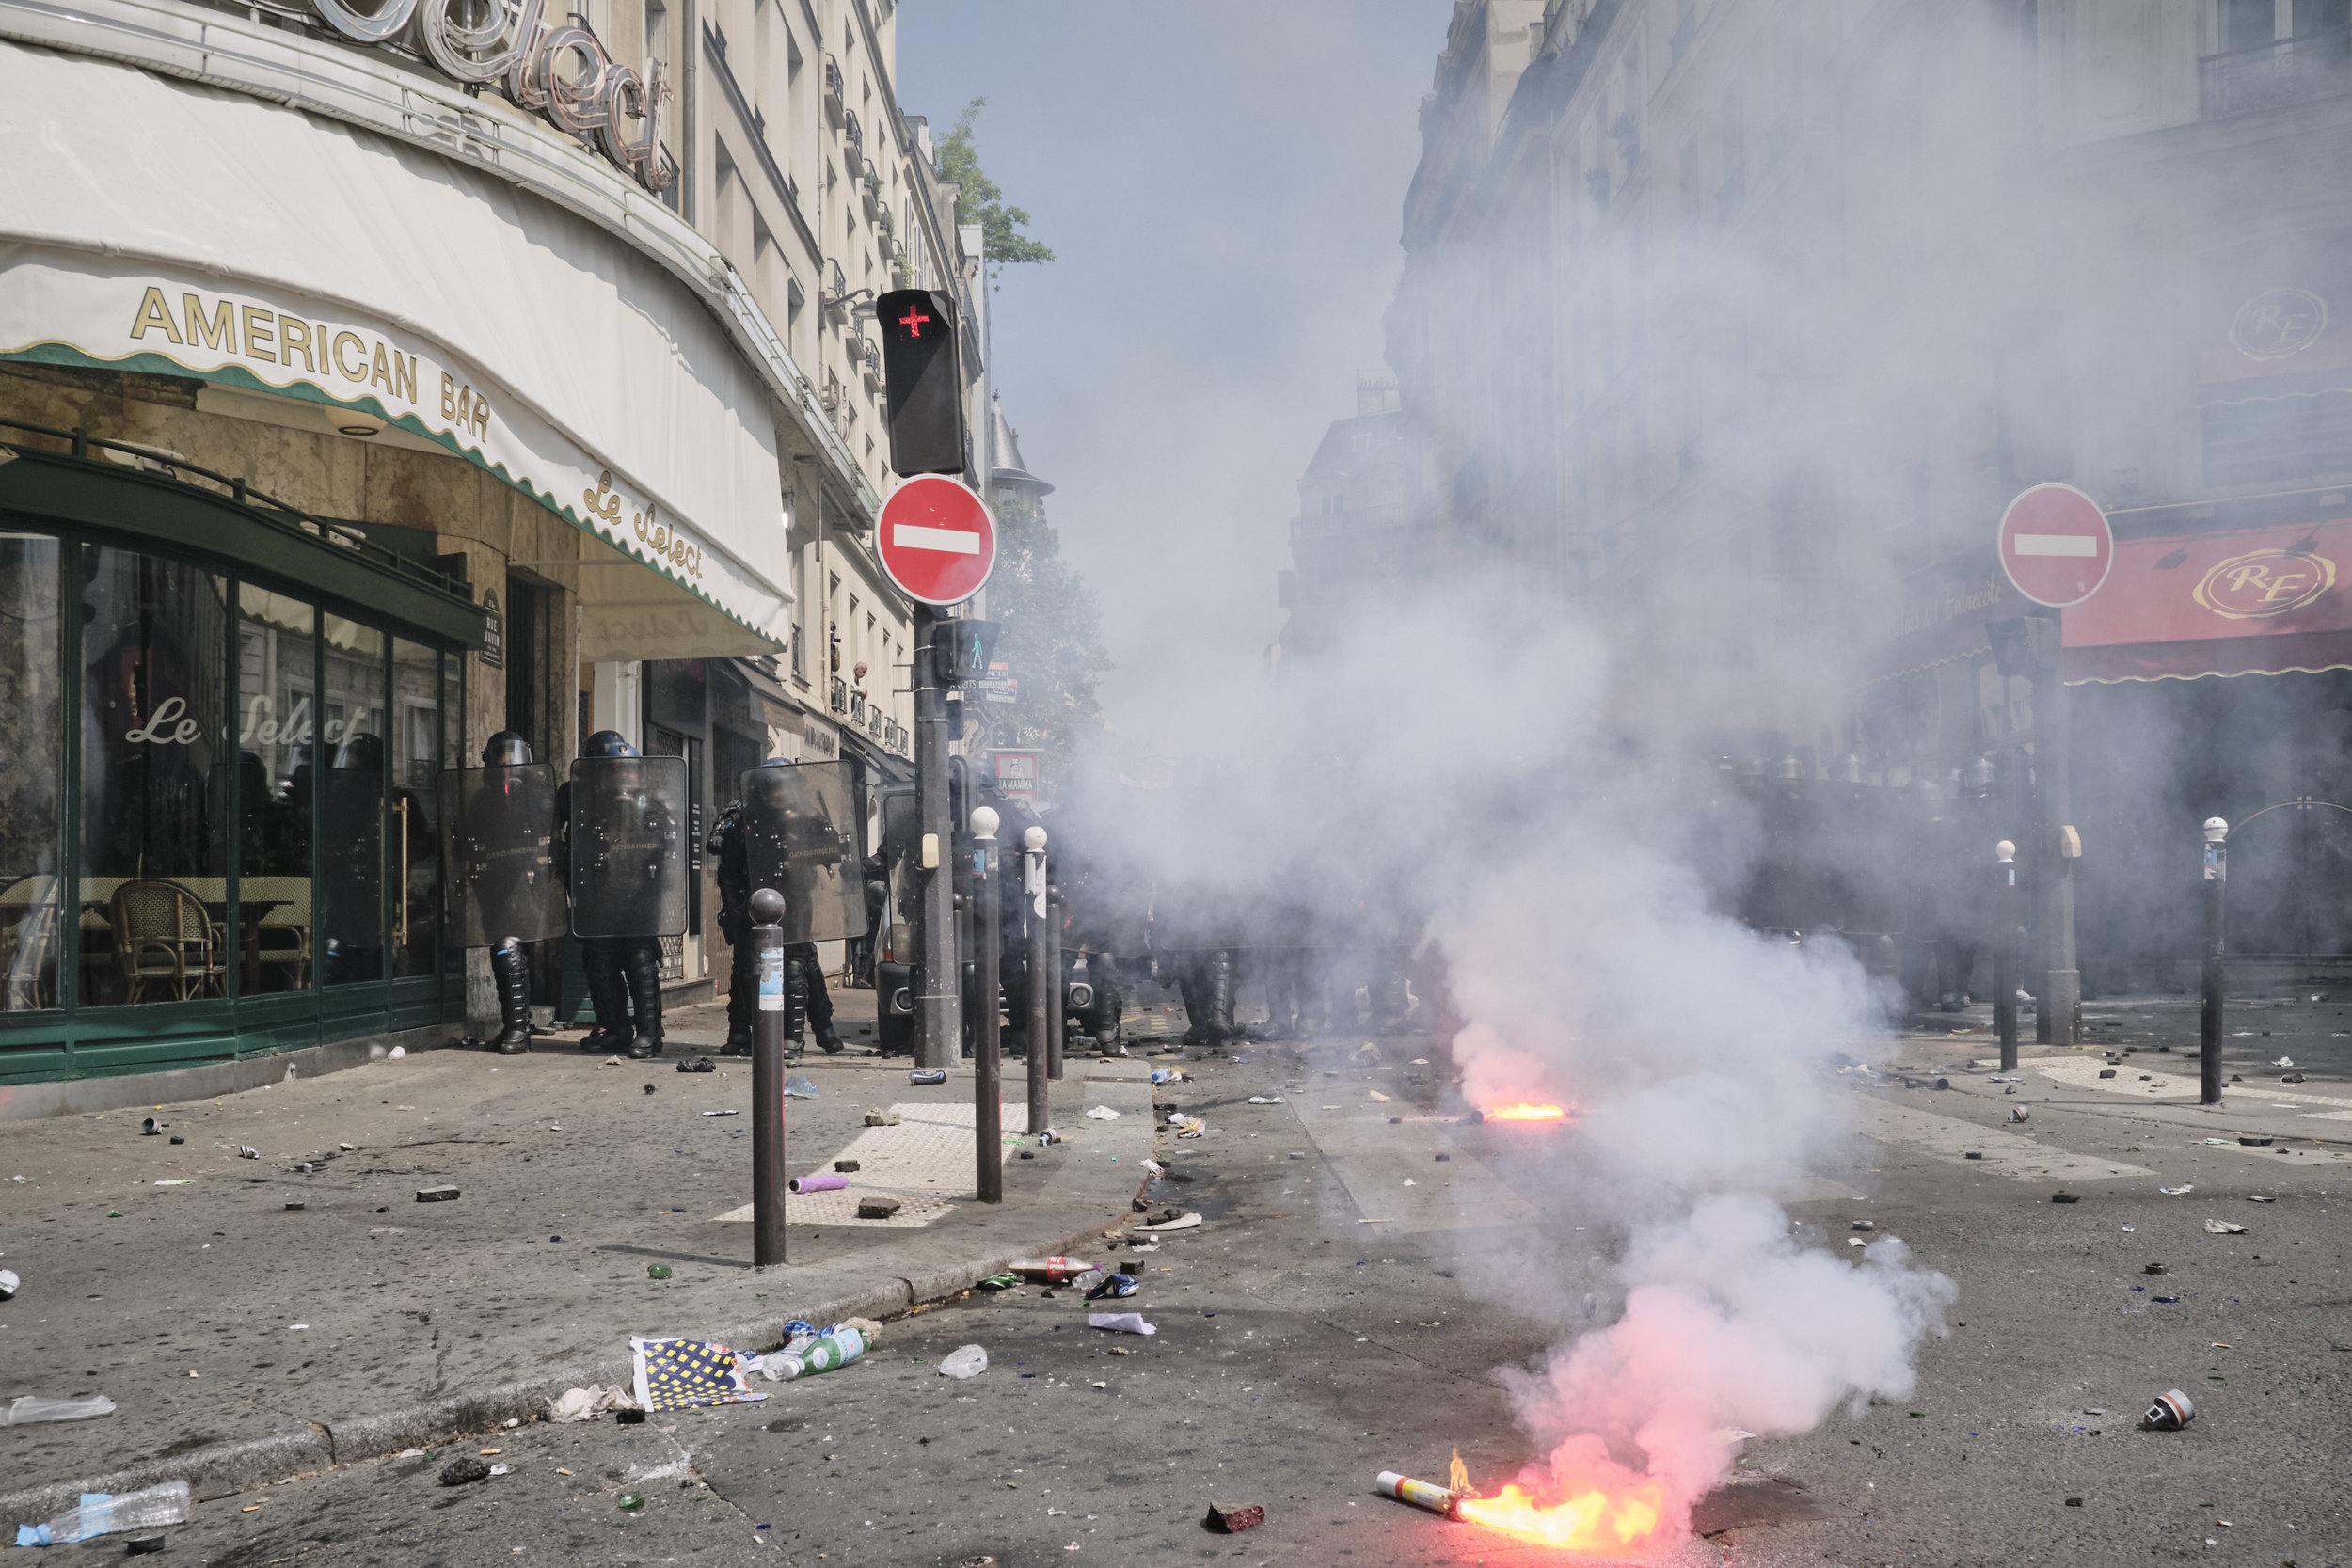 Light flairs burning after a confrontation between the protesters and the police at Boulevard du Montparnasse.